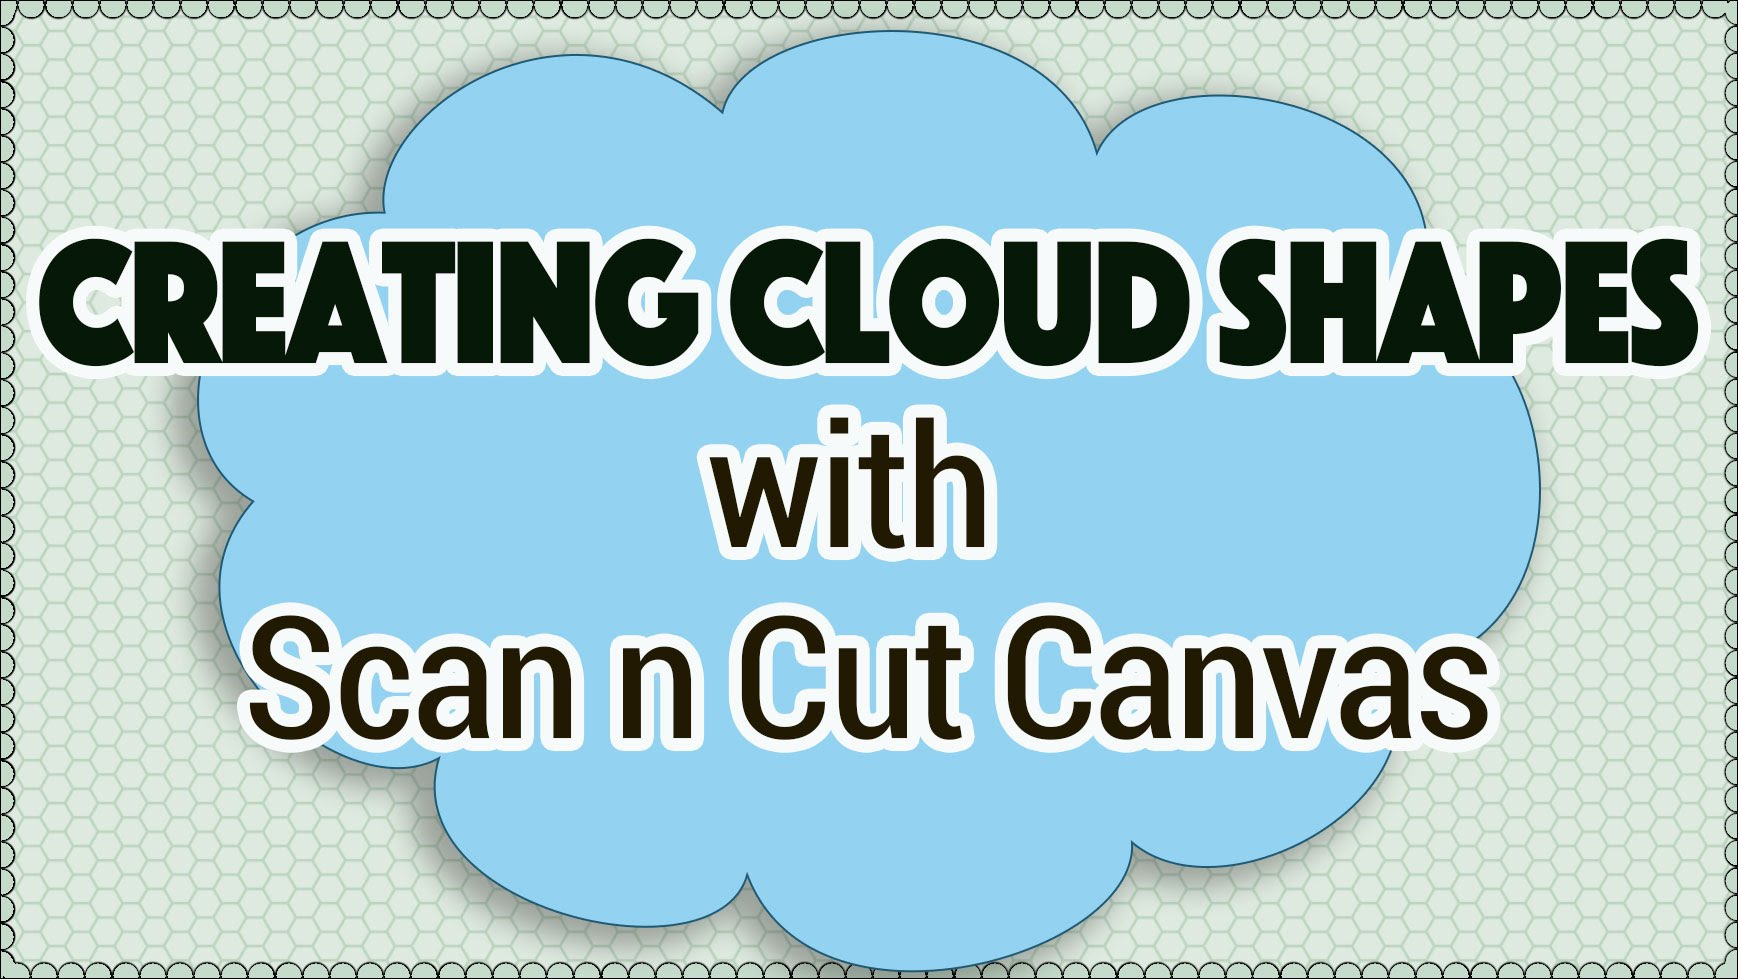 Making Cloud Shapes with the Brother Scan n Cut Canvas Software